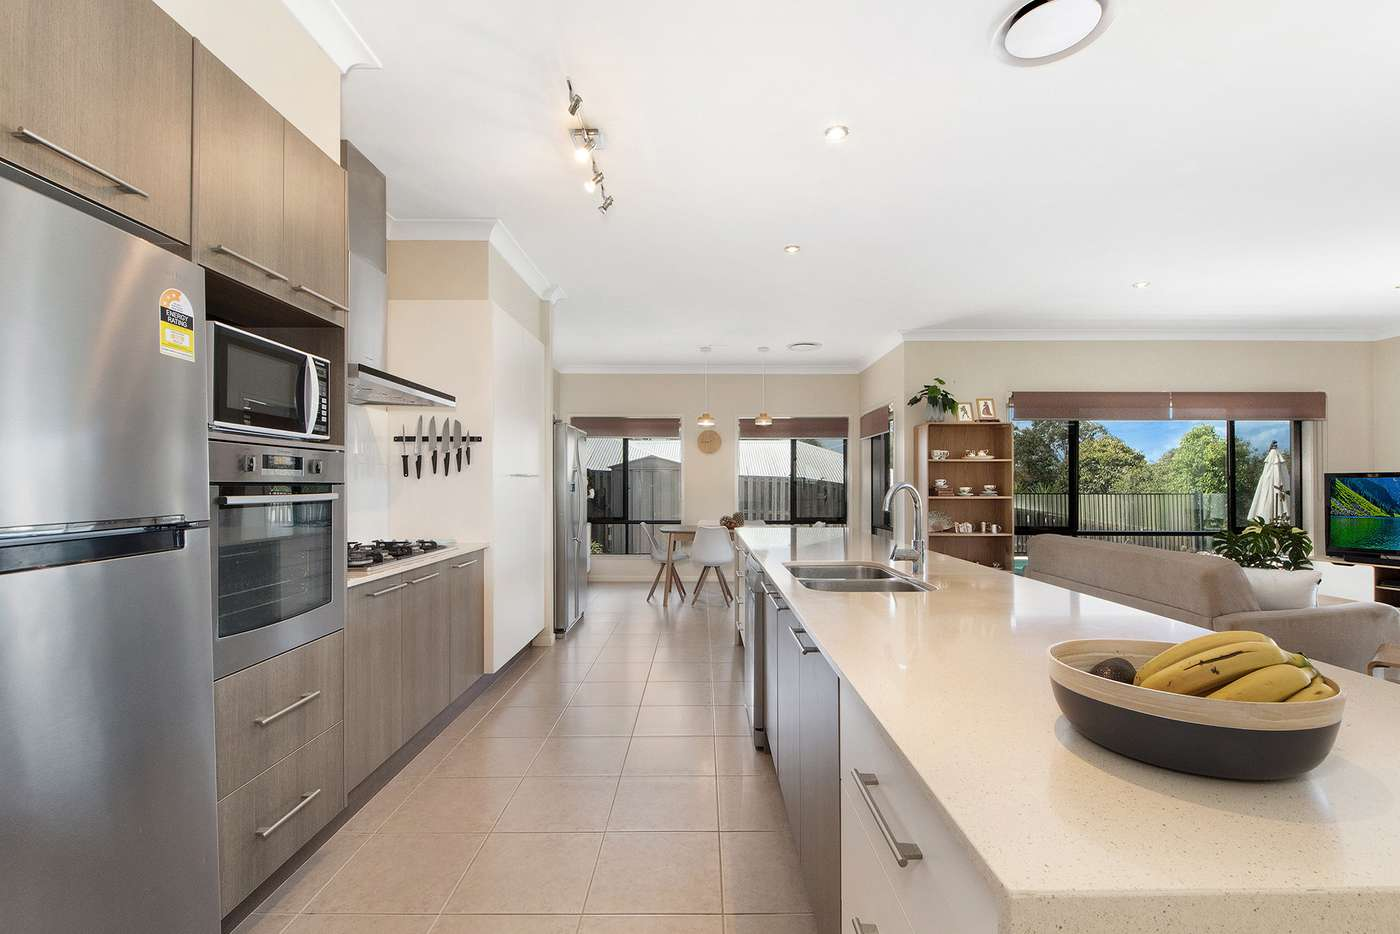 Fifth view of Homely house listing, 21 Skyburnett Street, Reedy Creek QLD 4227